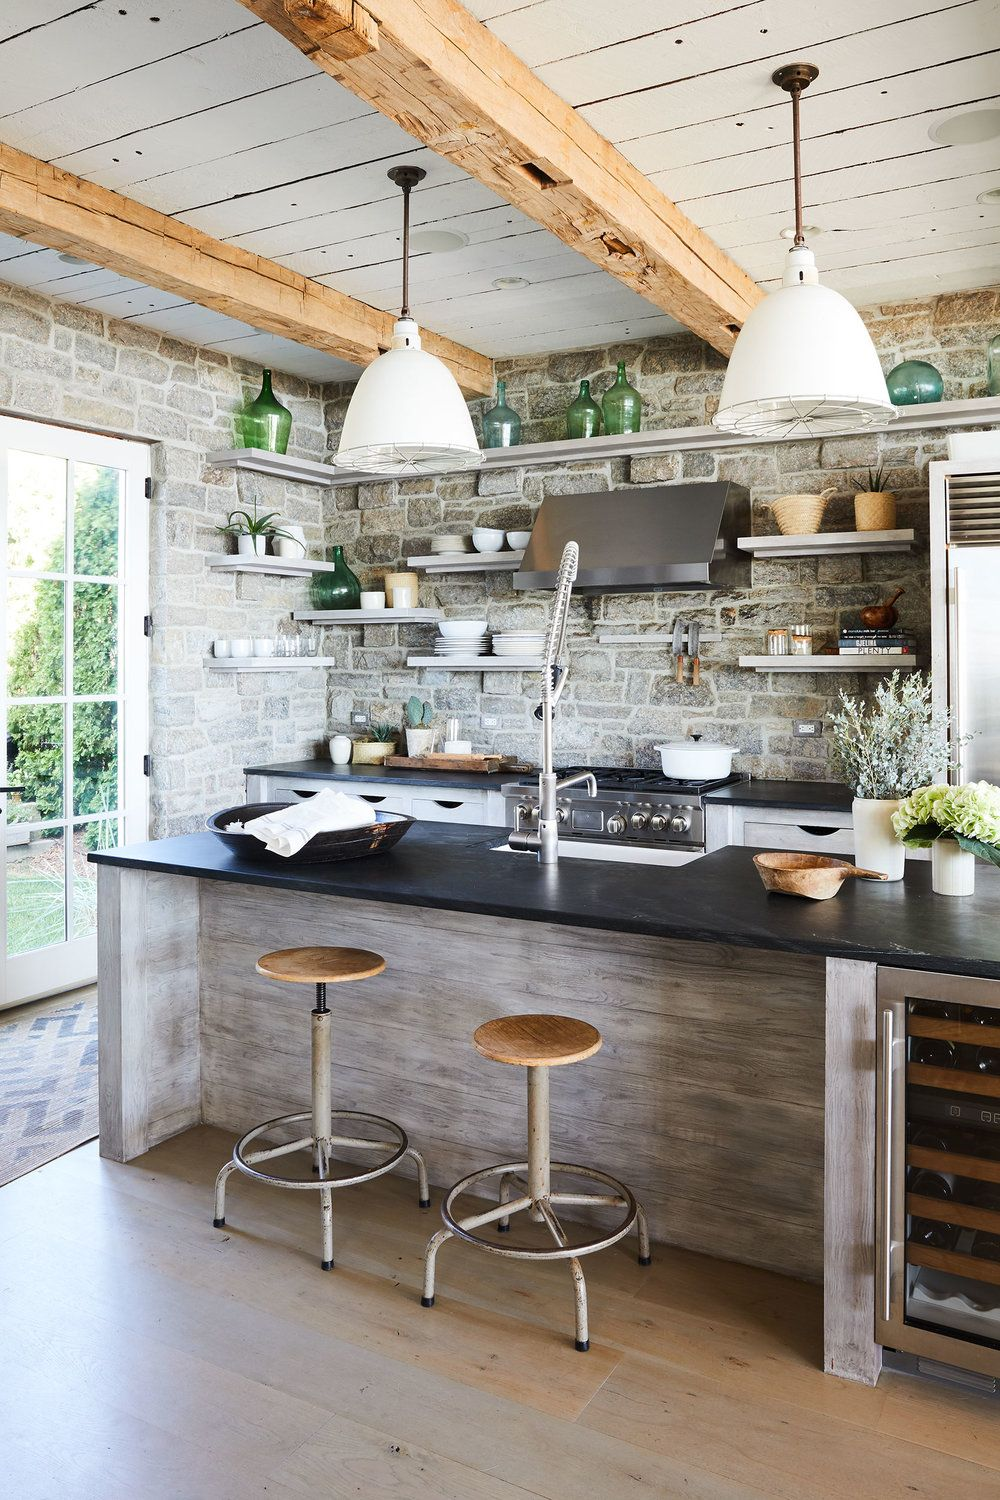 2019 Kitchen Trends - Kitchens Adelaide - Adelaide Outdoor Kitchens